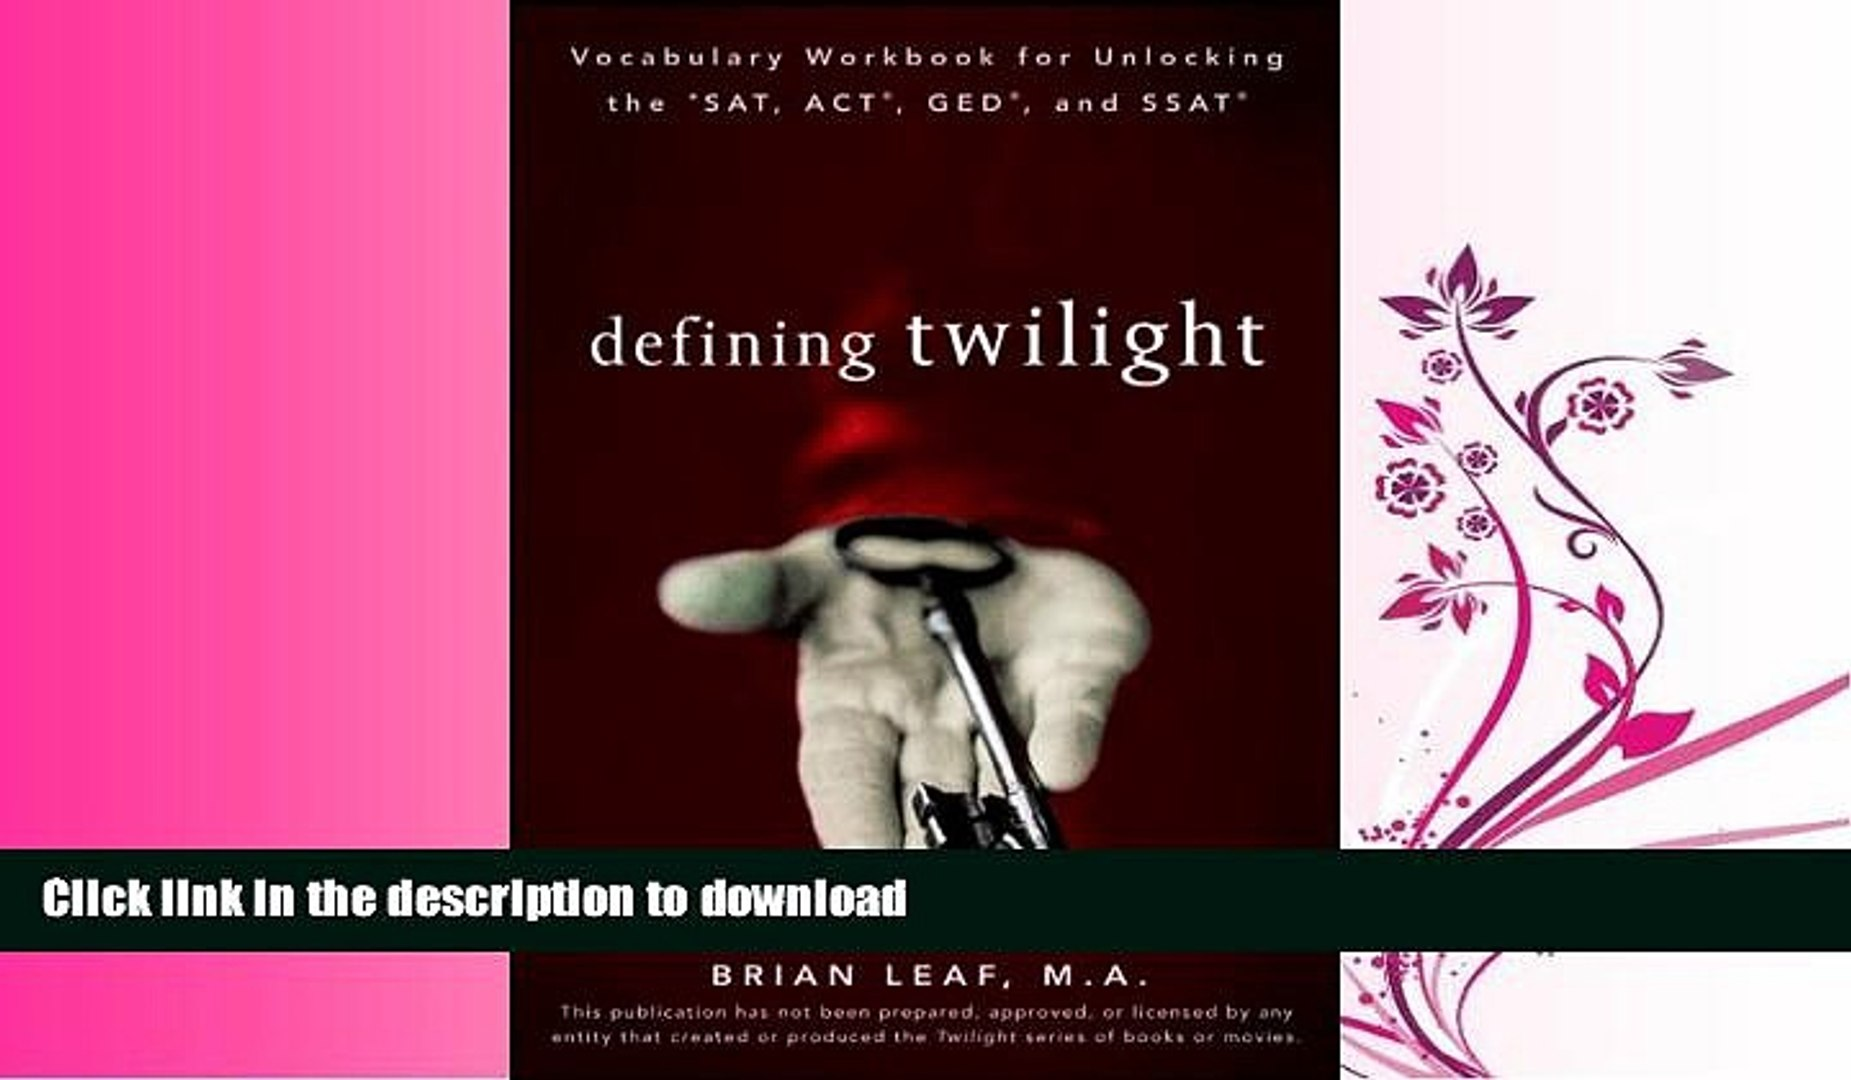 READ BOOK Defining Twilight: Vocabulary Workbook for Unlocking the SAT,  ACT, GED, and SSAT